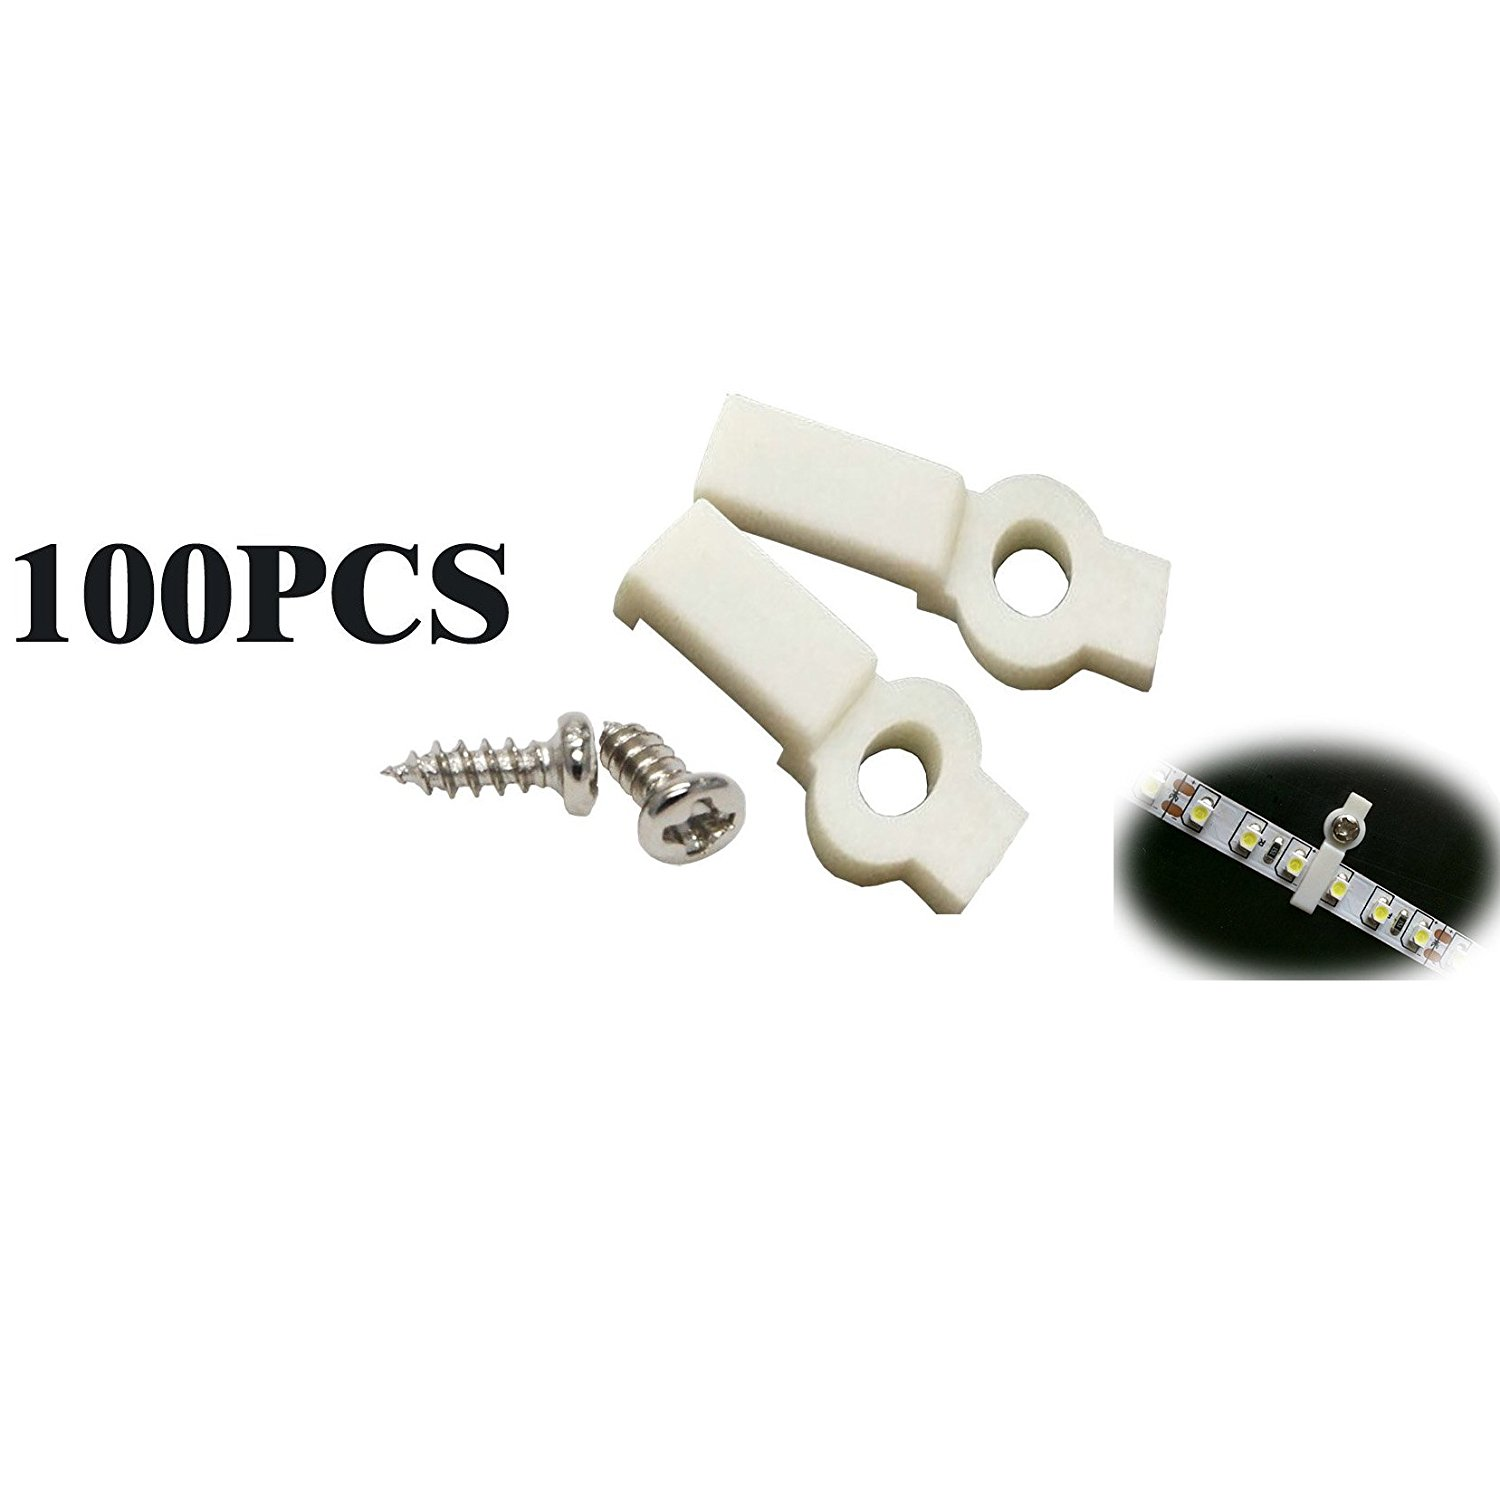 FINELED 100 Pcs Mounting Bracket Clip for 10mm Wide 3528 5050 5630 3014 Non-waterproof Led Strip Light,clip-one Side Fixing,screws Included (Ideal for strip width 10mm)